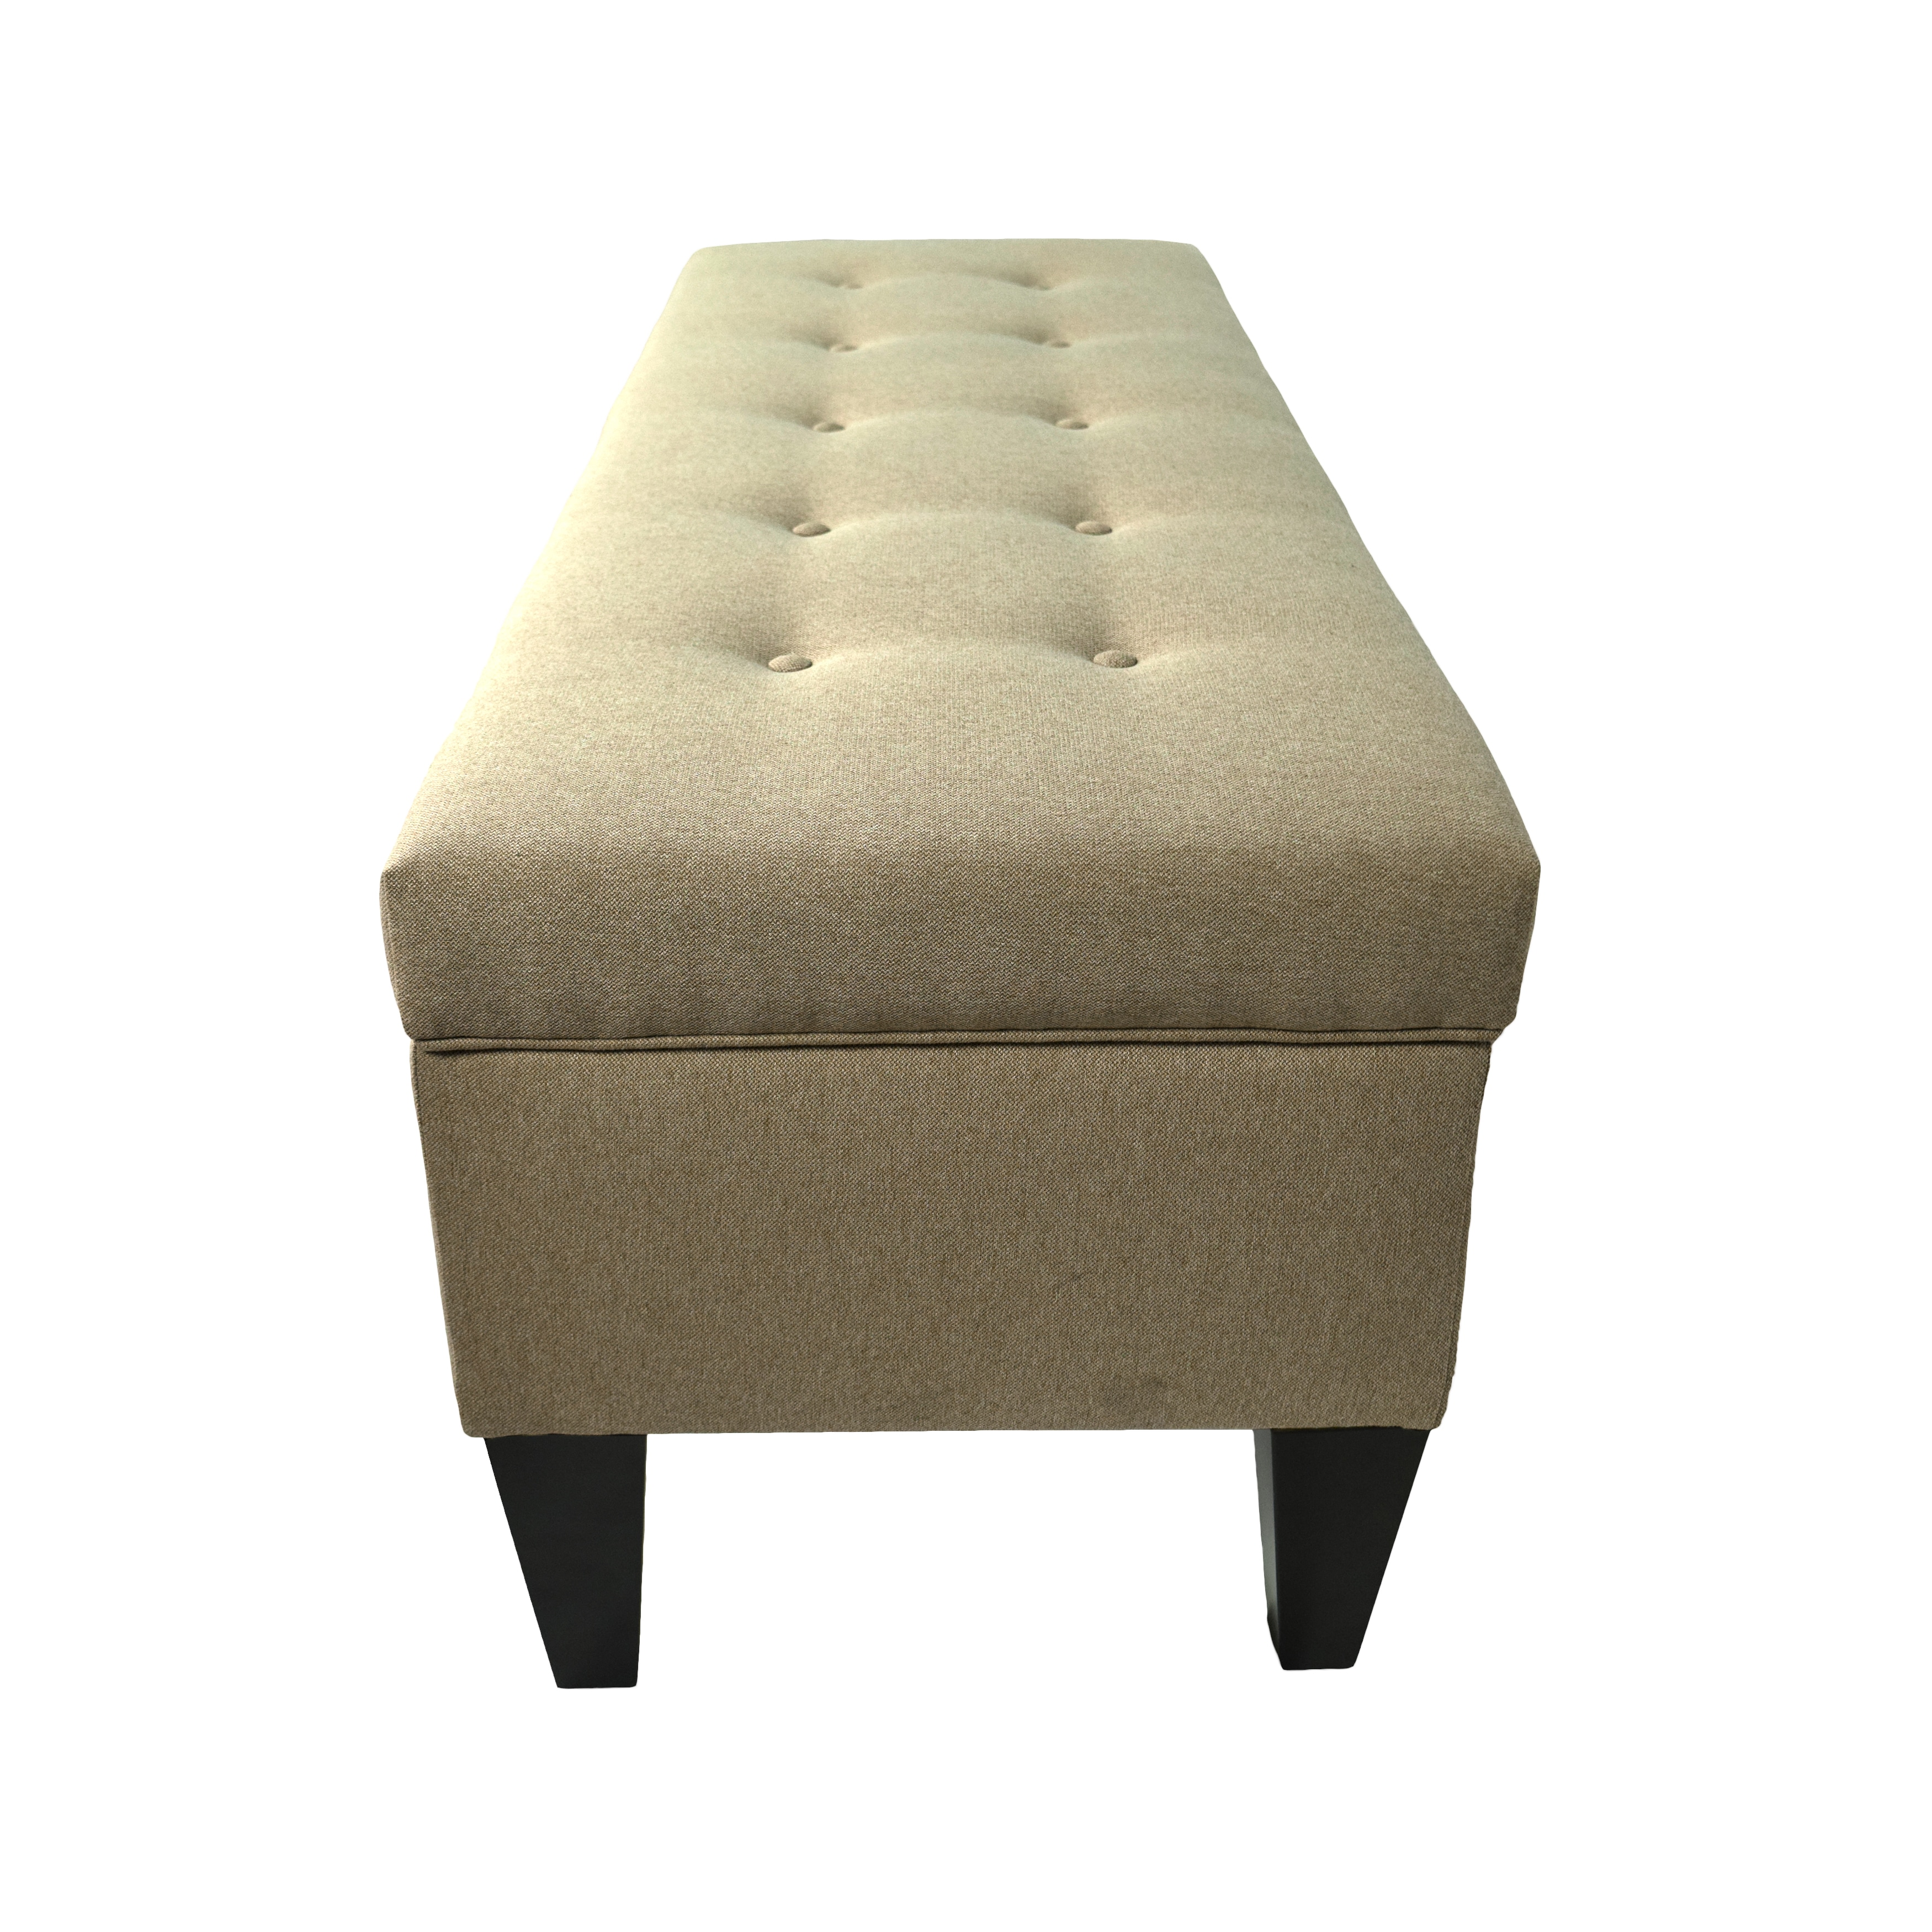 Shop MJL Furniture Brooke 10 Button Tufted Dawson7 Long Storage Bench Ottoman - On Sale - Free Shipping Today - Overstock.com - 11324477  sc 1 st  Overstock.com & Shop MJL Furniture Brooke 10 Button Tufted Dawson7 Long Storage ...